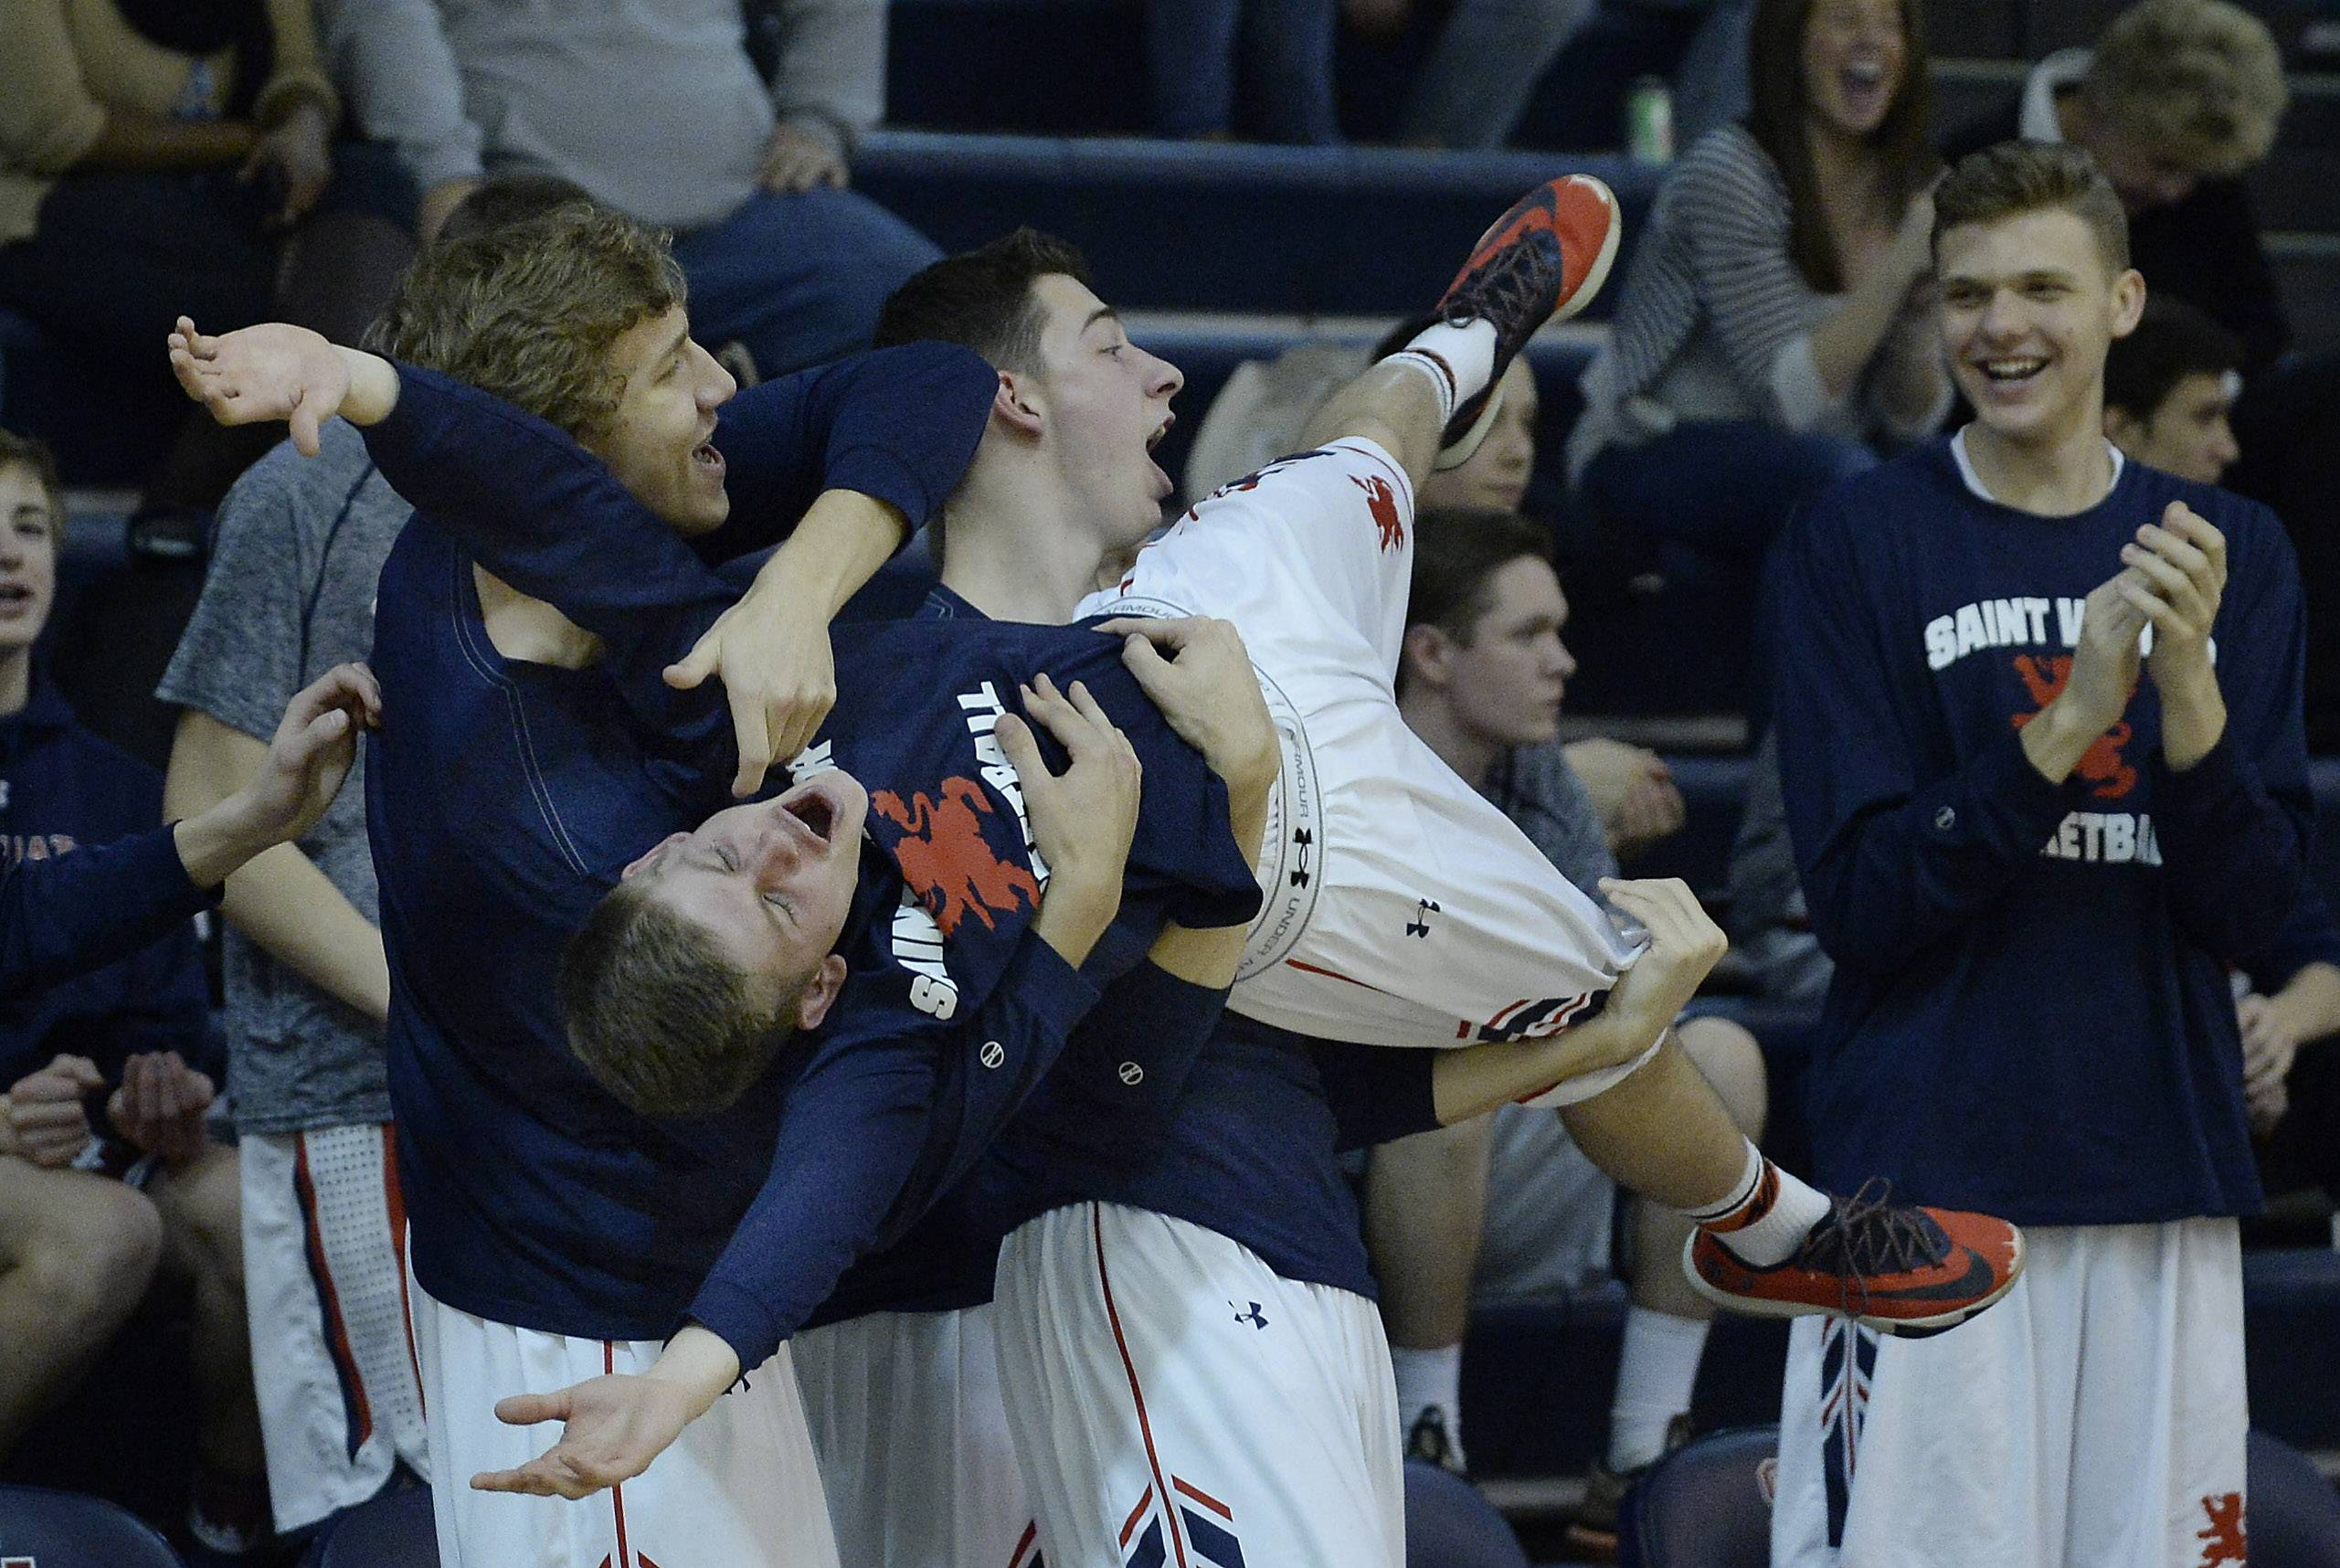 St. Viator's Trevor Koos and his teammates celebrate a point and the eventual win over Joliet Catholic Academy in boys varsity basketball at St. Viator on Thursday.